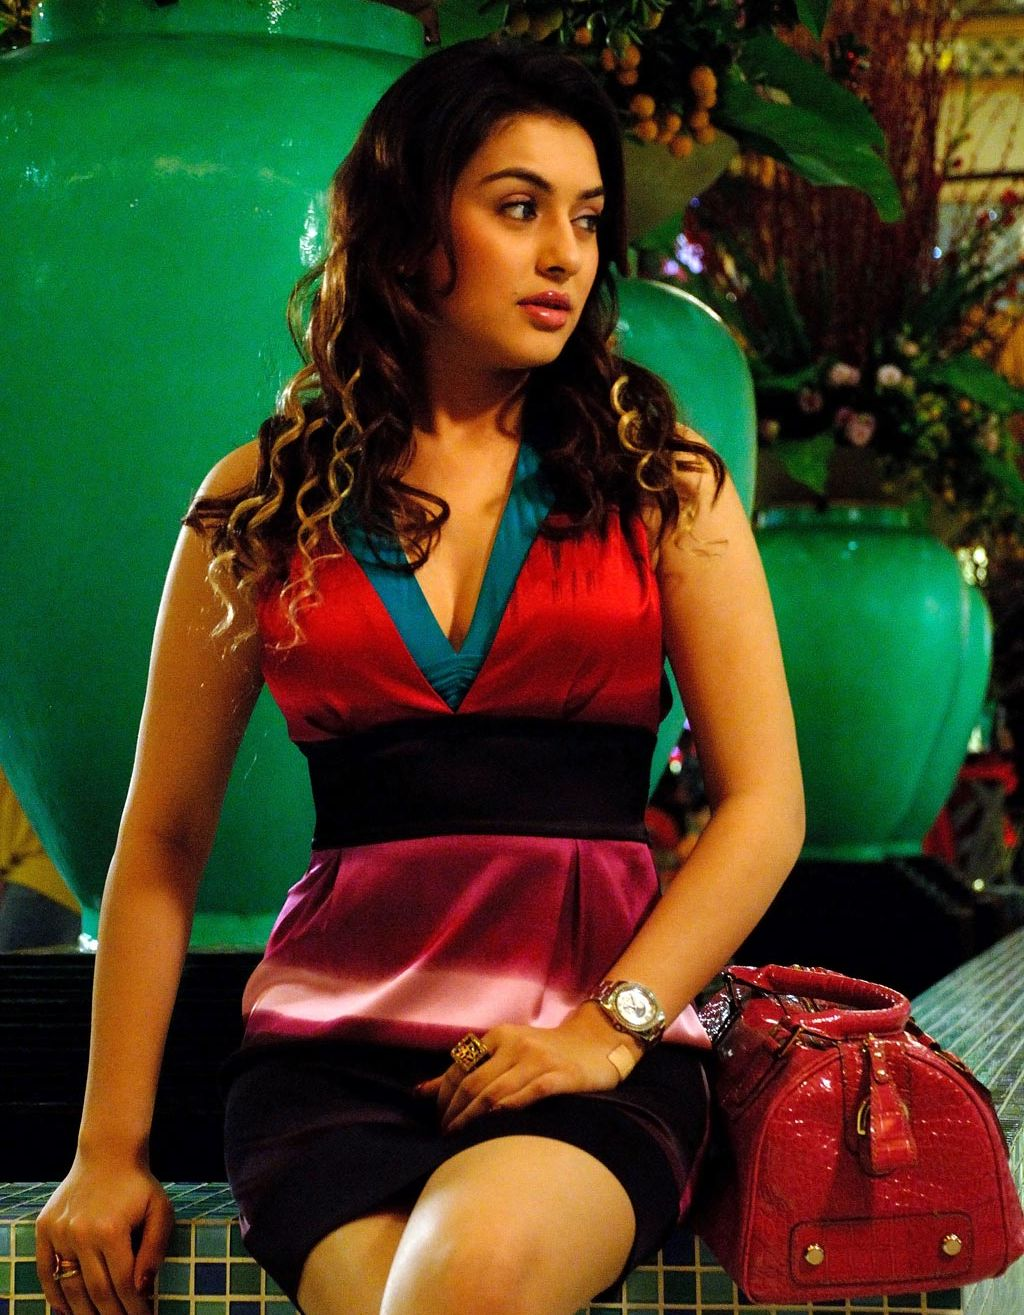 Consider, that Hansika motwani high quality nude pictures assured